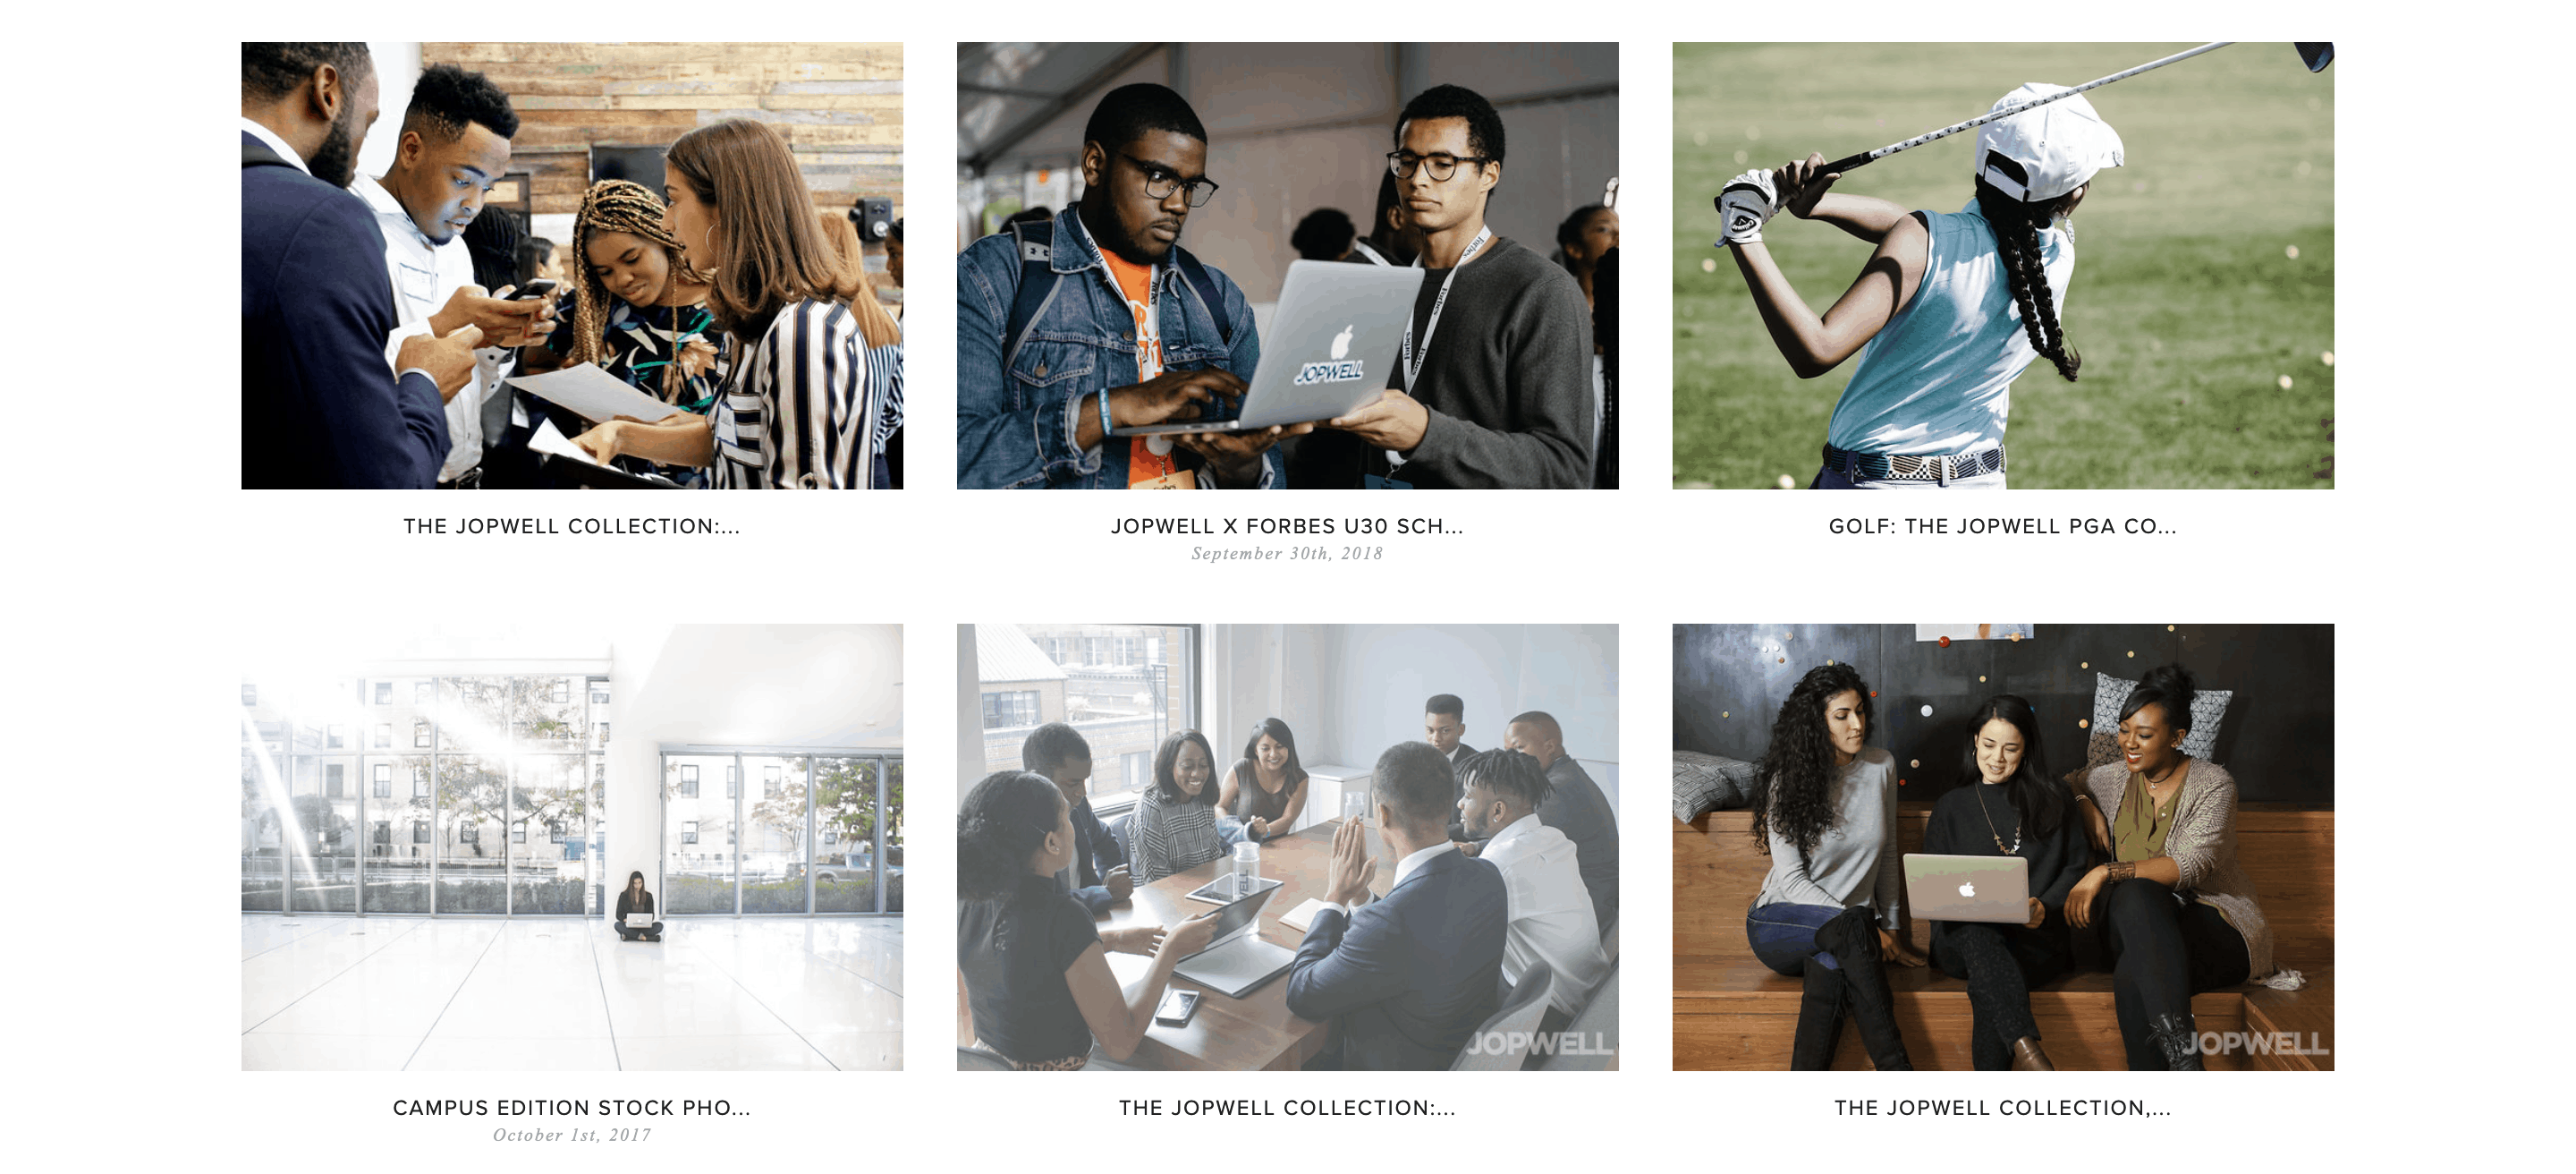 The Jopwell Collection website.